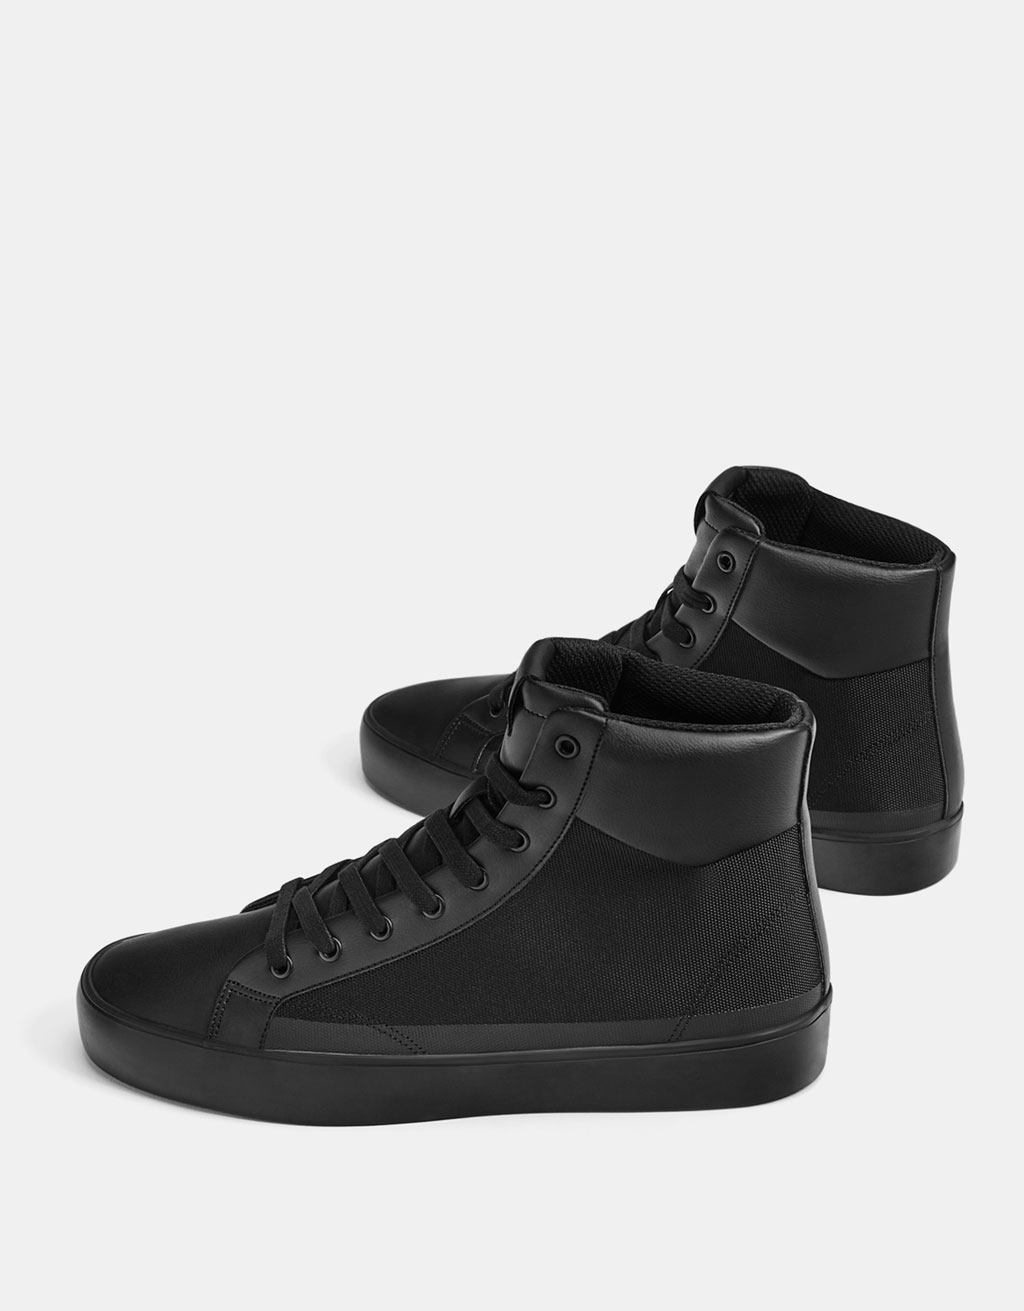 Men's monochrome high top sneakers